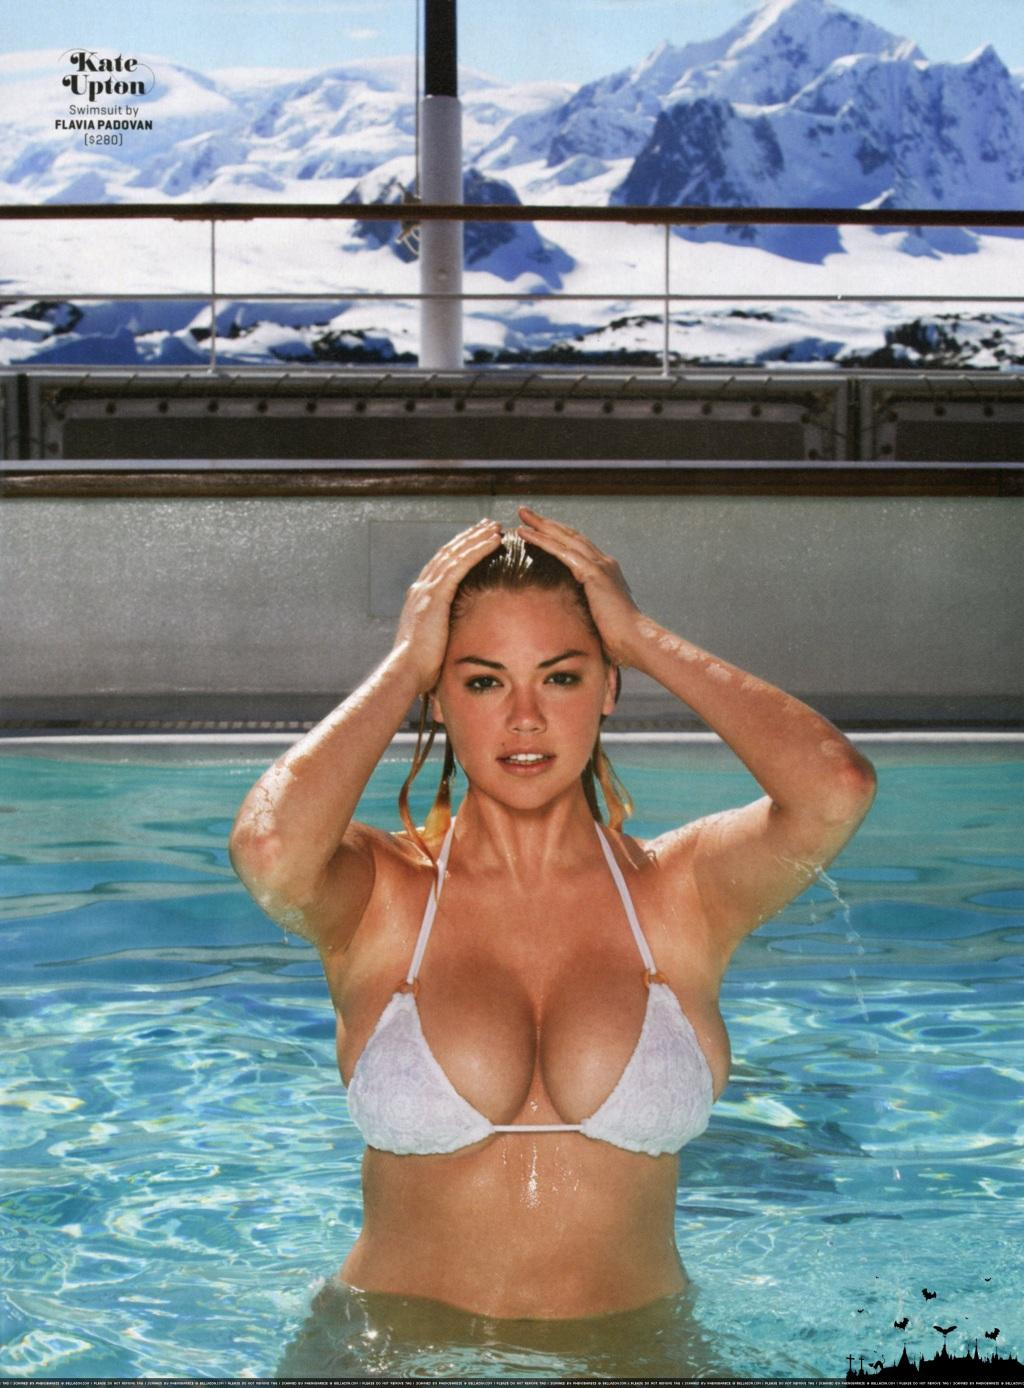 Kate Upton Sports Illustrated Cover Swimsuit Issue Sports Illustrated Cover